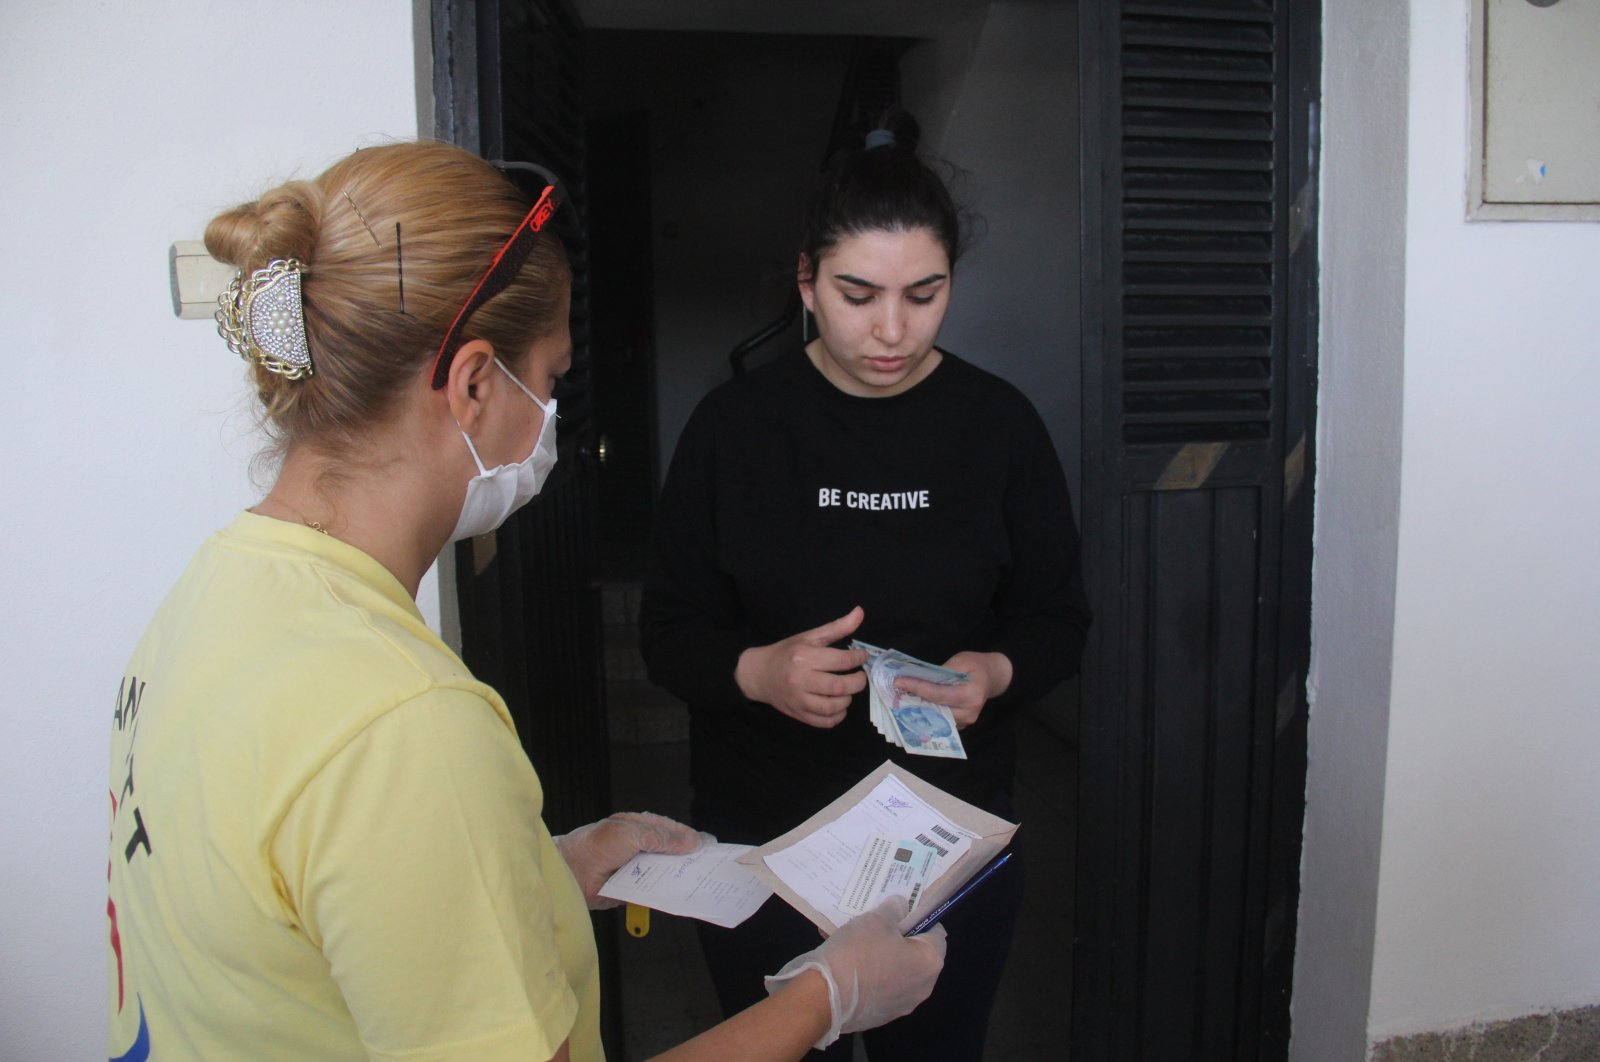 A postal worker delivers TL 1,000 cash aid to a woman in Adana, Turkey, April 21, 2020. (İHA Photo)